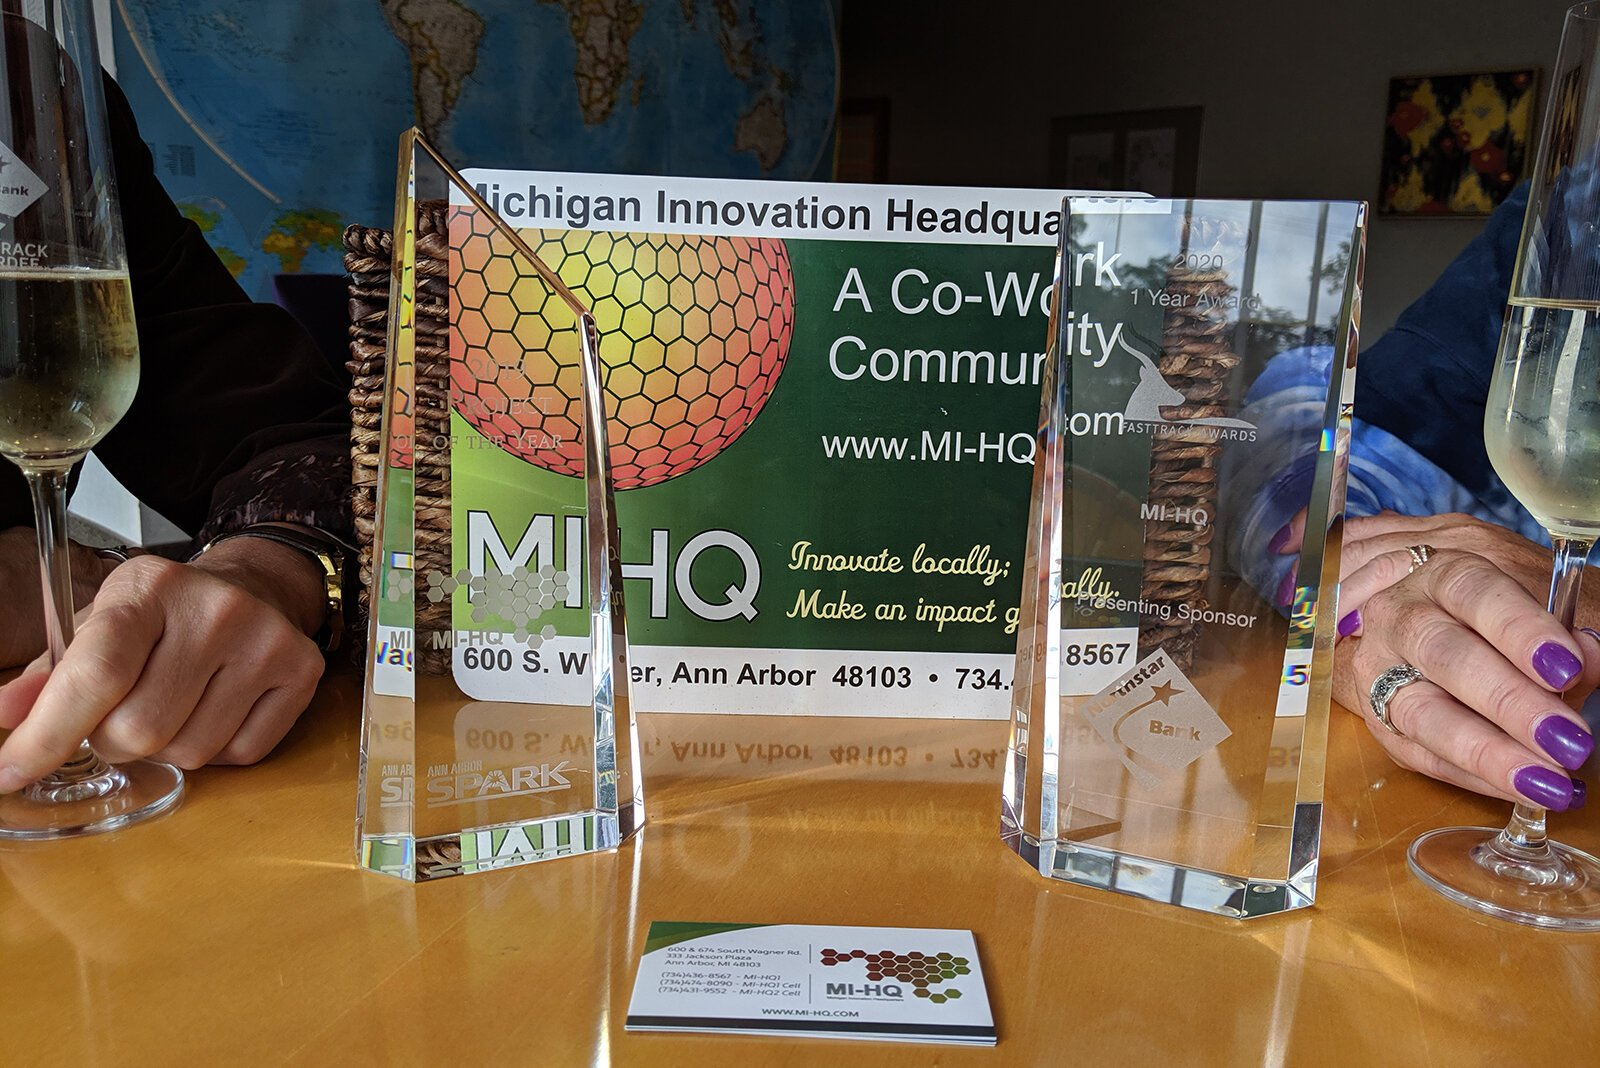 MI-HQ was one of this year's FastTrack Award winners.